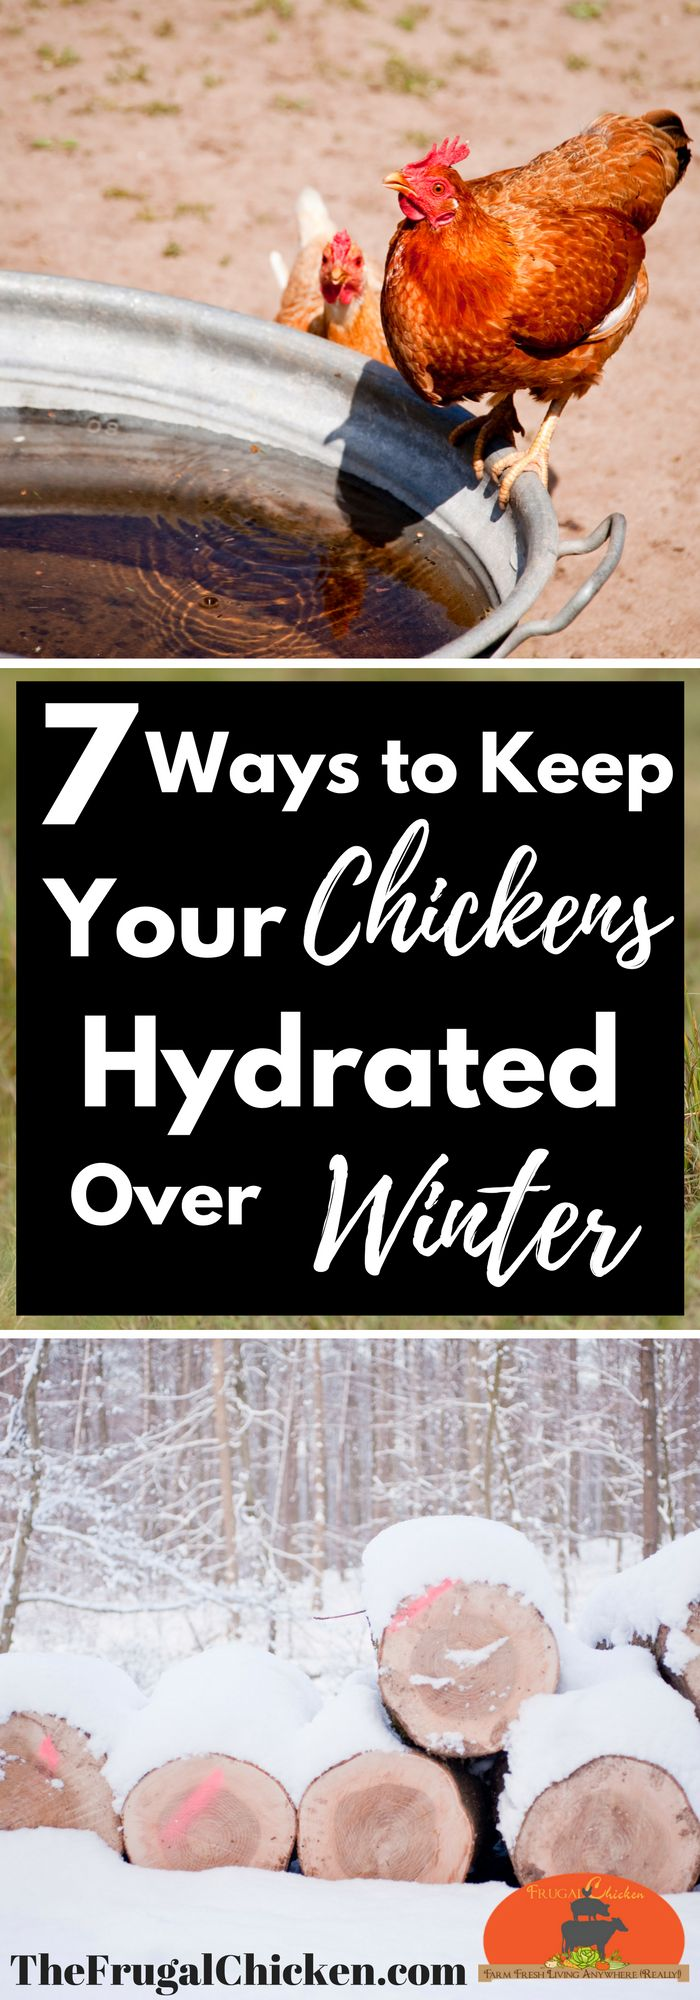 When winter comes, it's easy for your backyard chickens to become dehydrated as water turns to ice. Here's 7 ways to keep them flush in water even when the mercury dips.